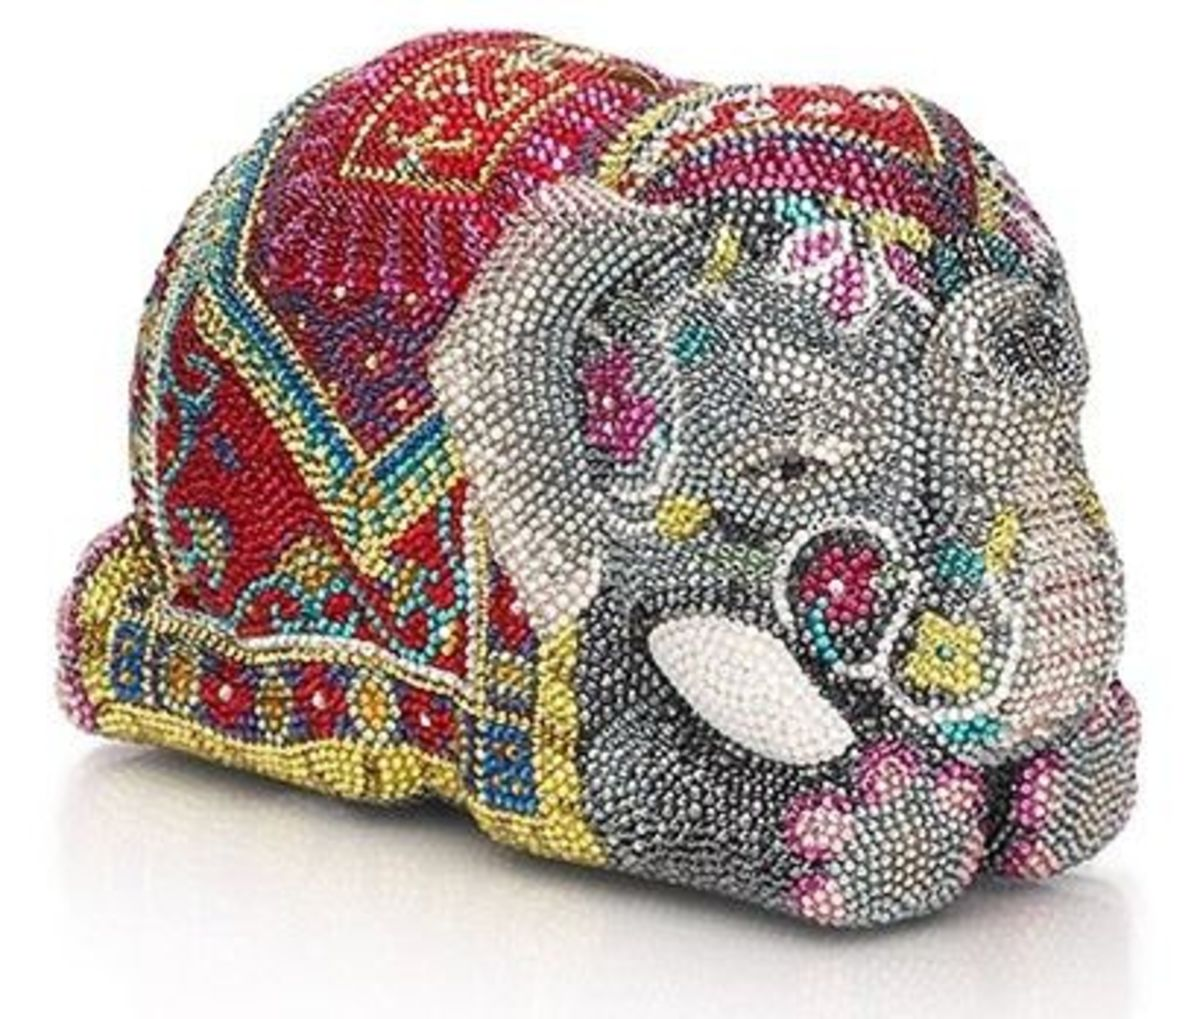 MAHARAJA Price: $5,995This brightly colored elephant is a must have as it has ornate costuming details, sculpted ears, tusks, feet and trunk. It also includes onyx eyes. It includes a tuck away chain. Inspired by the elephants that Indian Maharaja